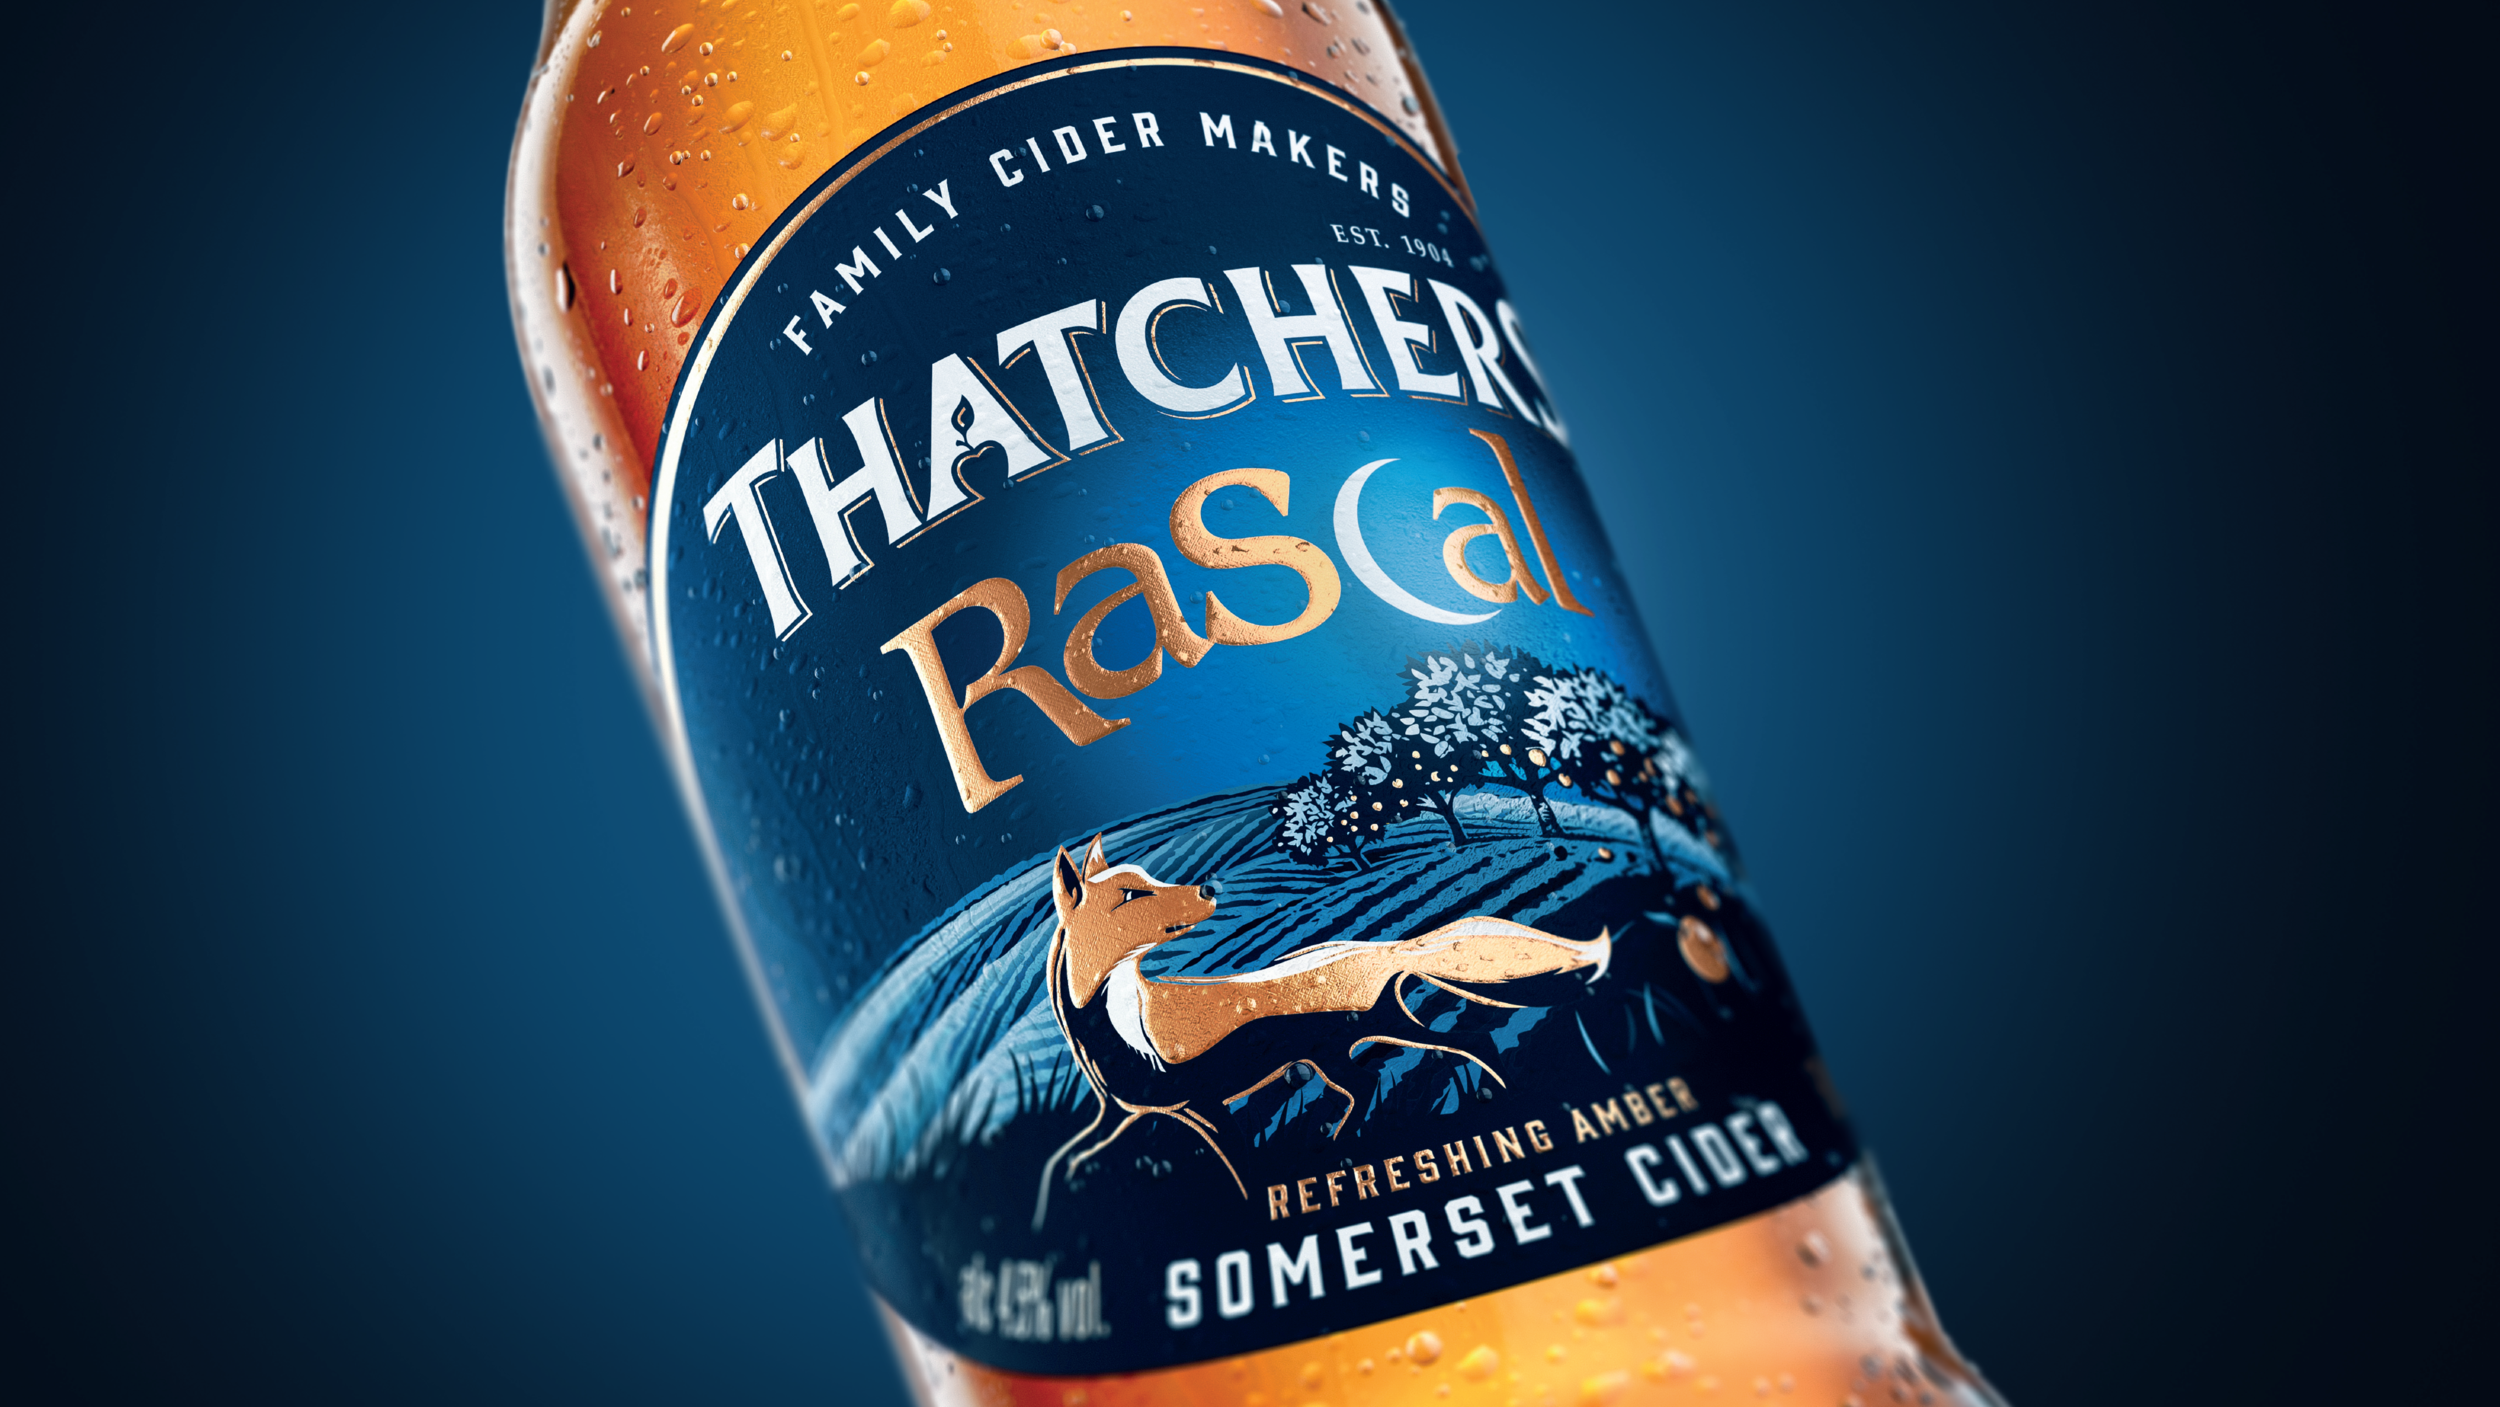 bluemarlin - Thatchers Rascal4.png